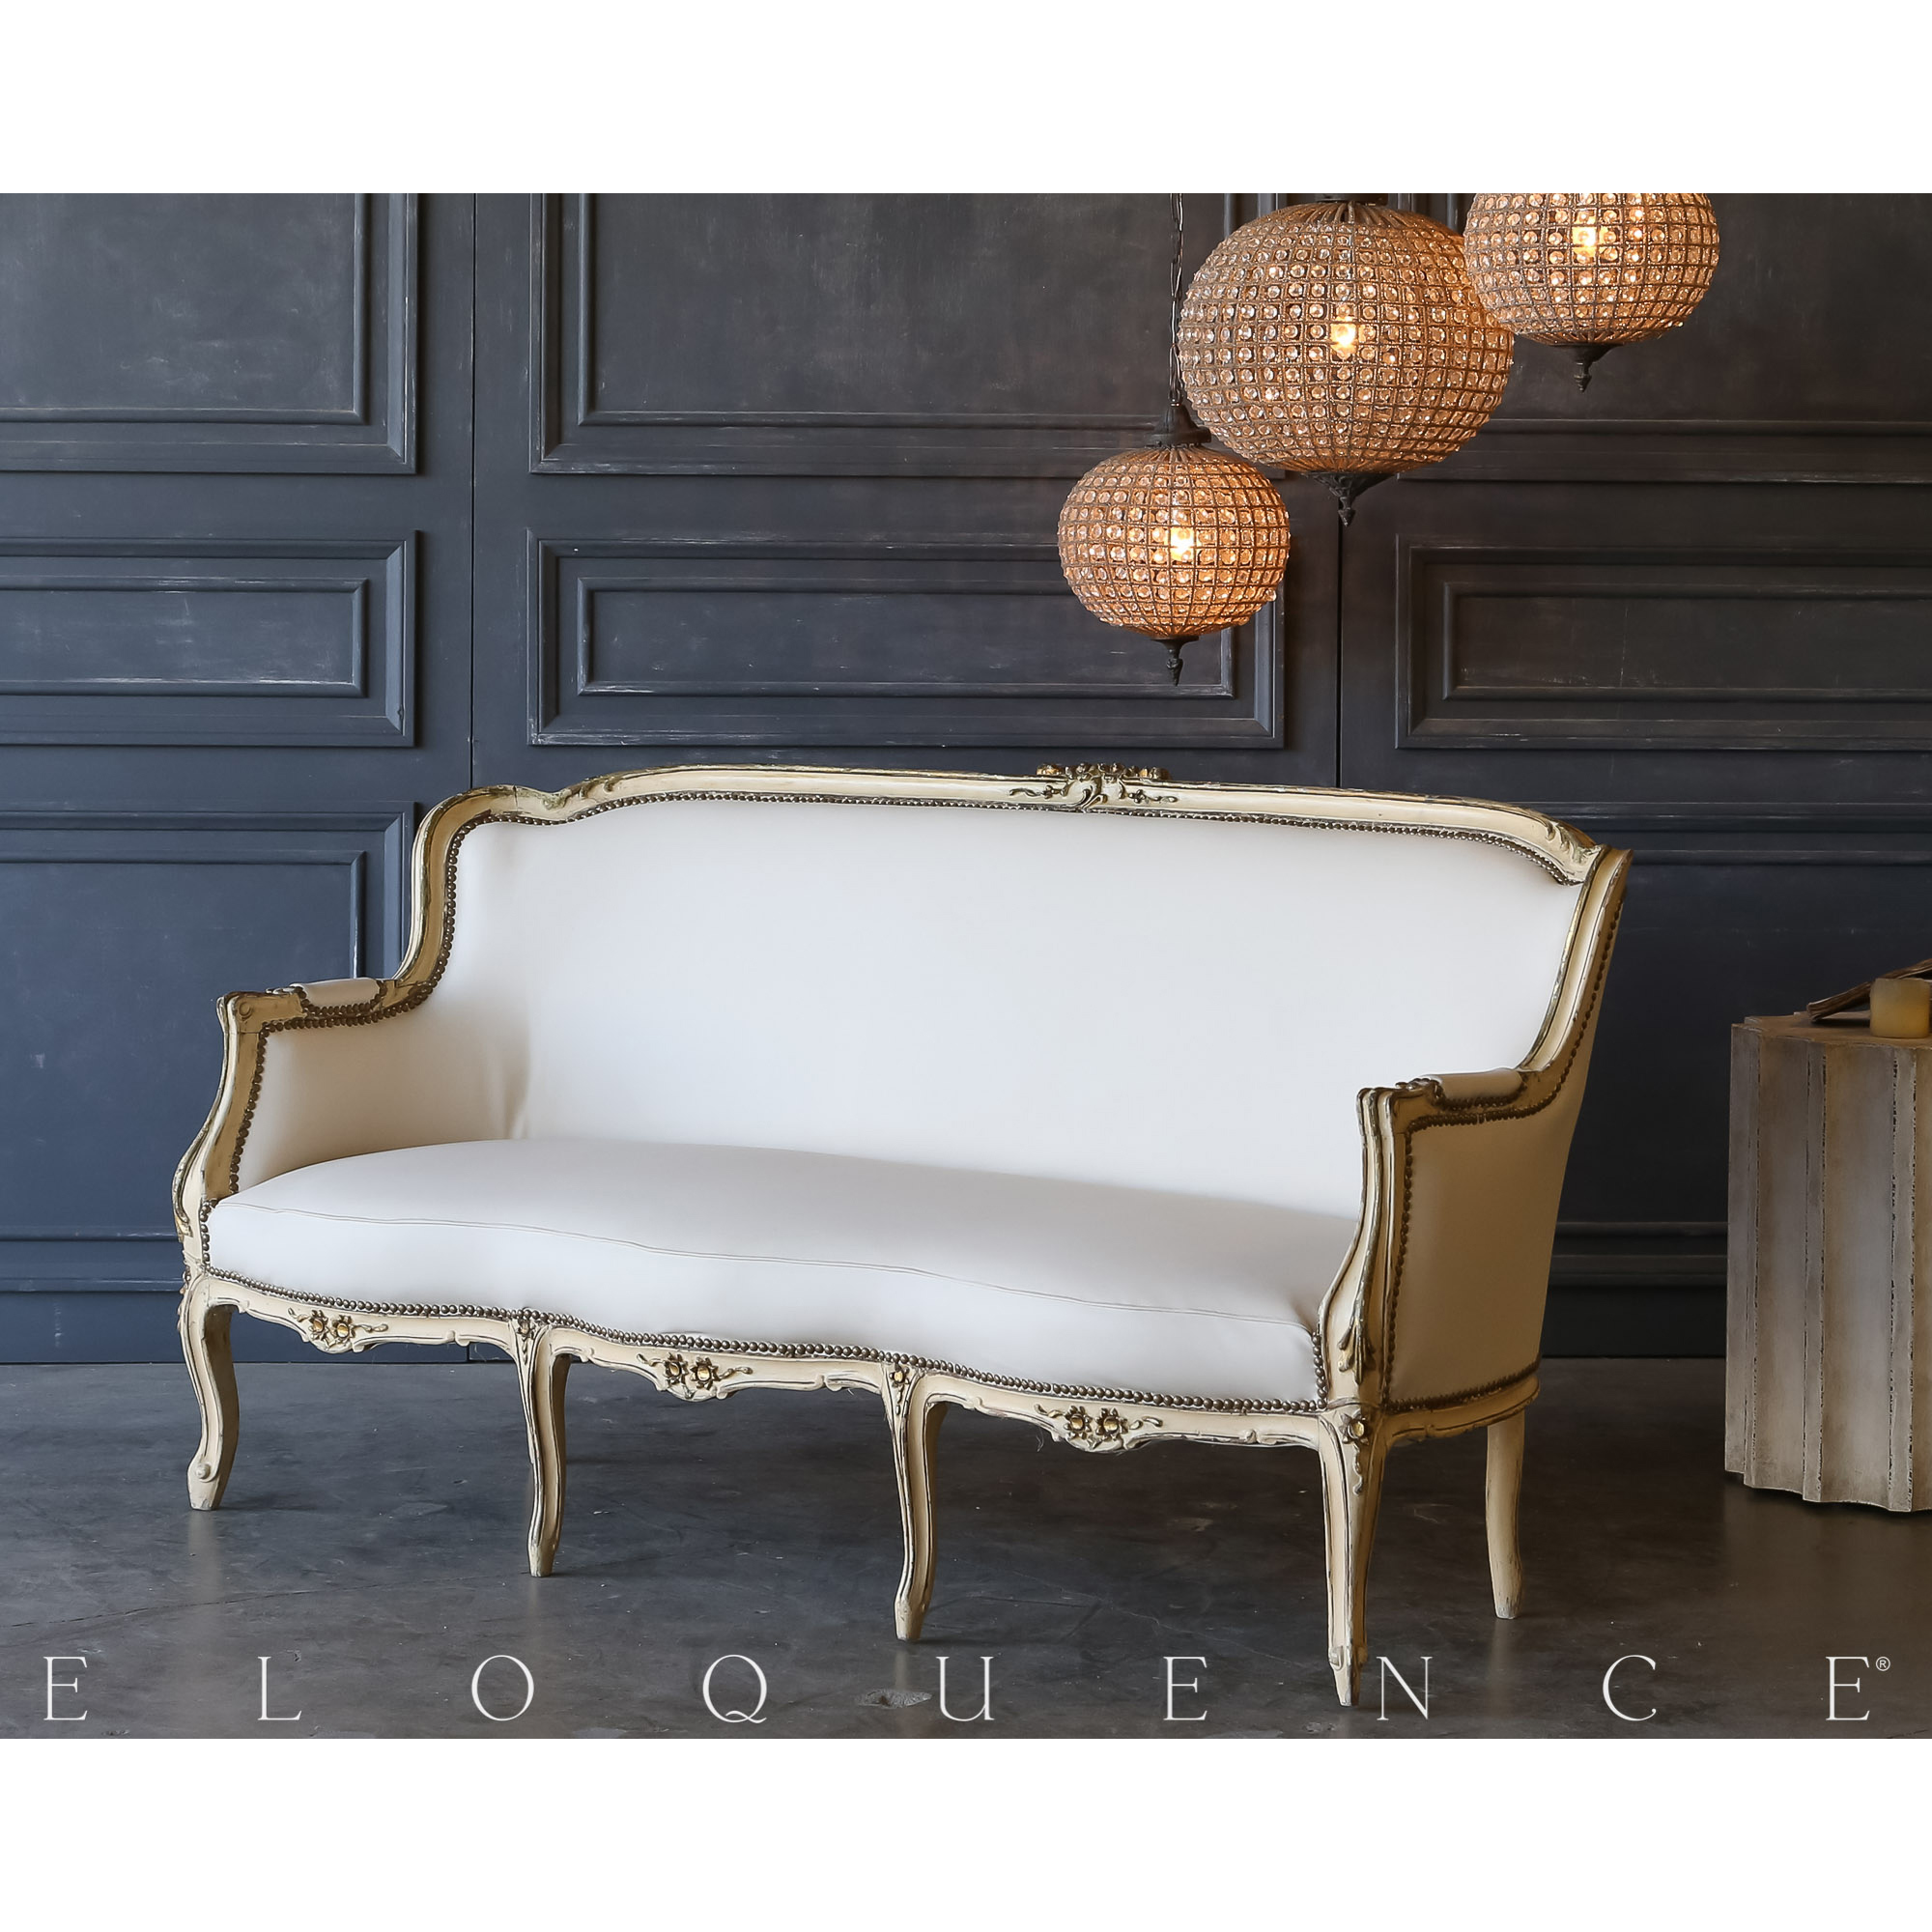 Eloquence® Vintage Cream Louis XV Settee: 1940